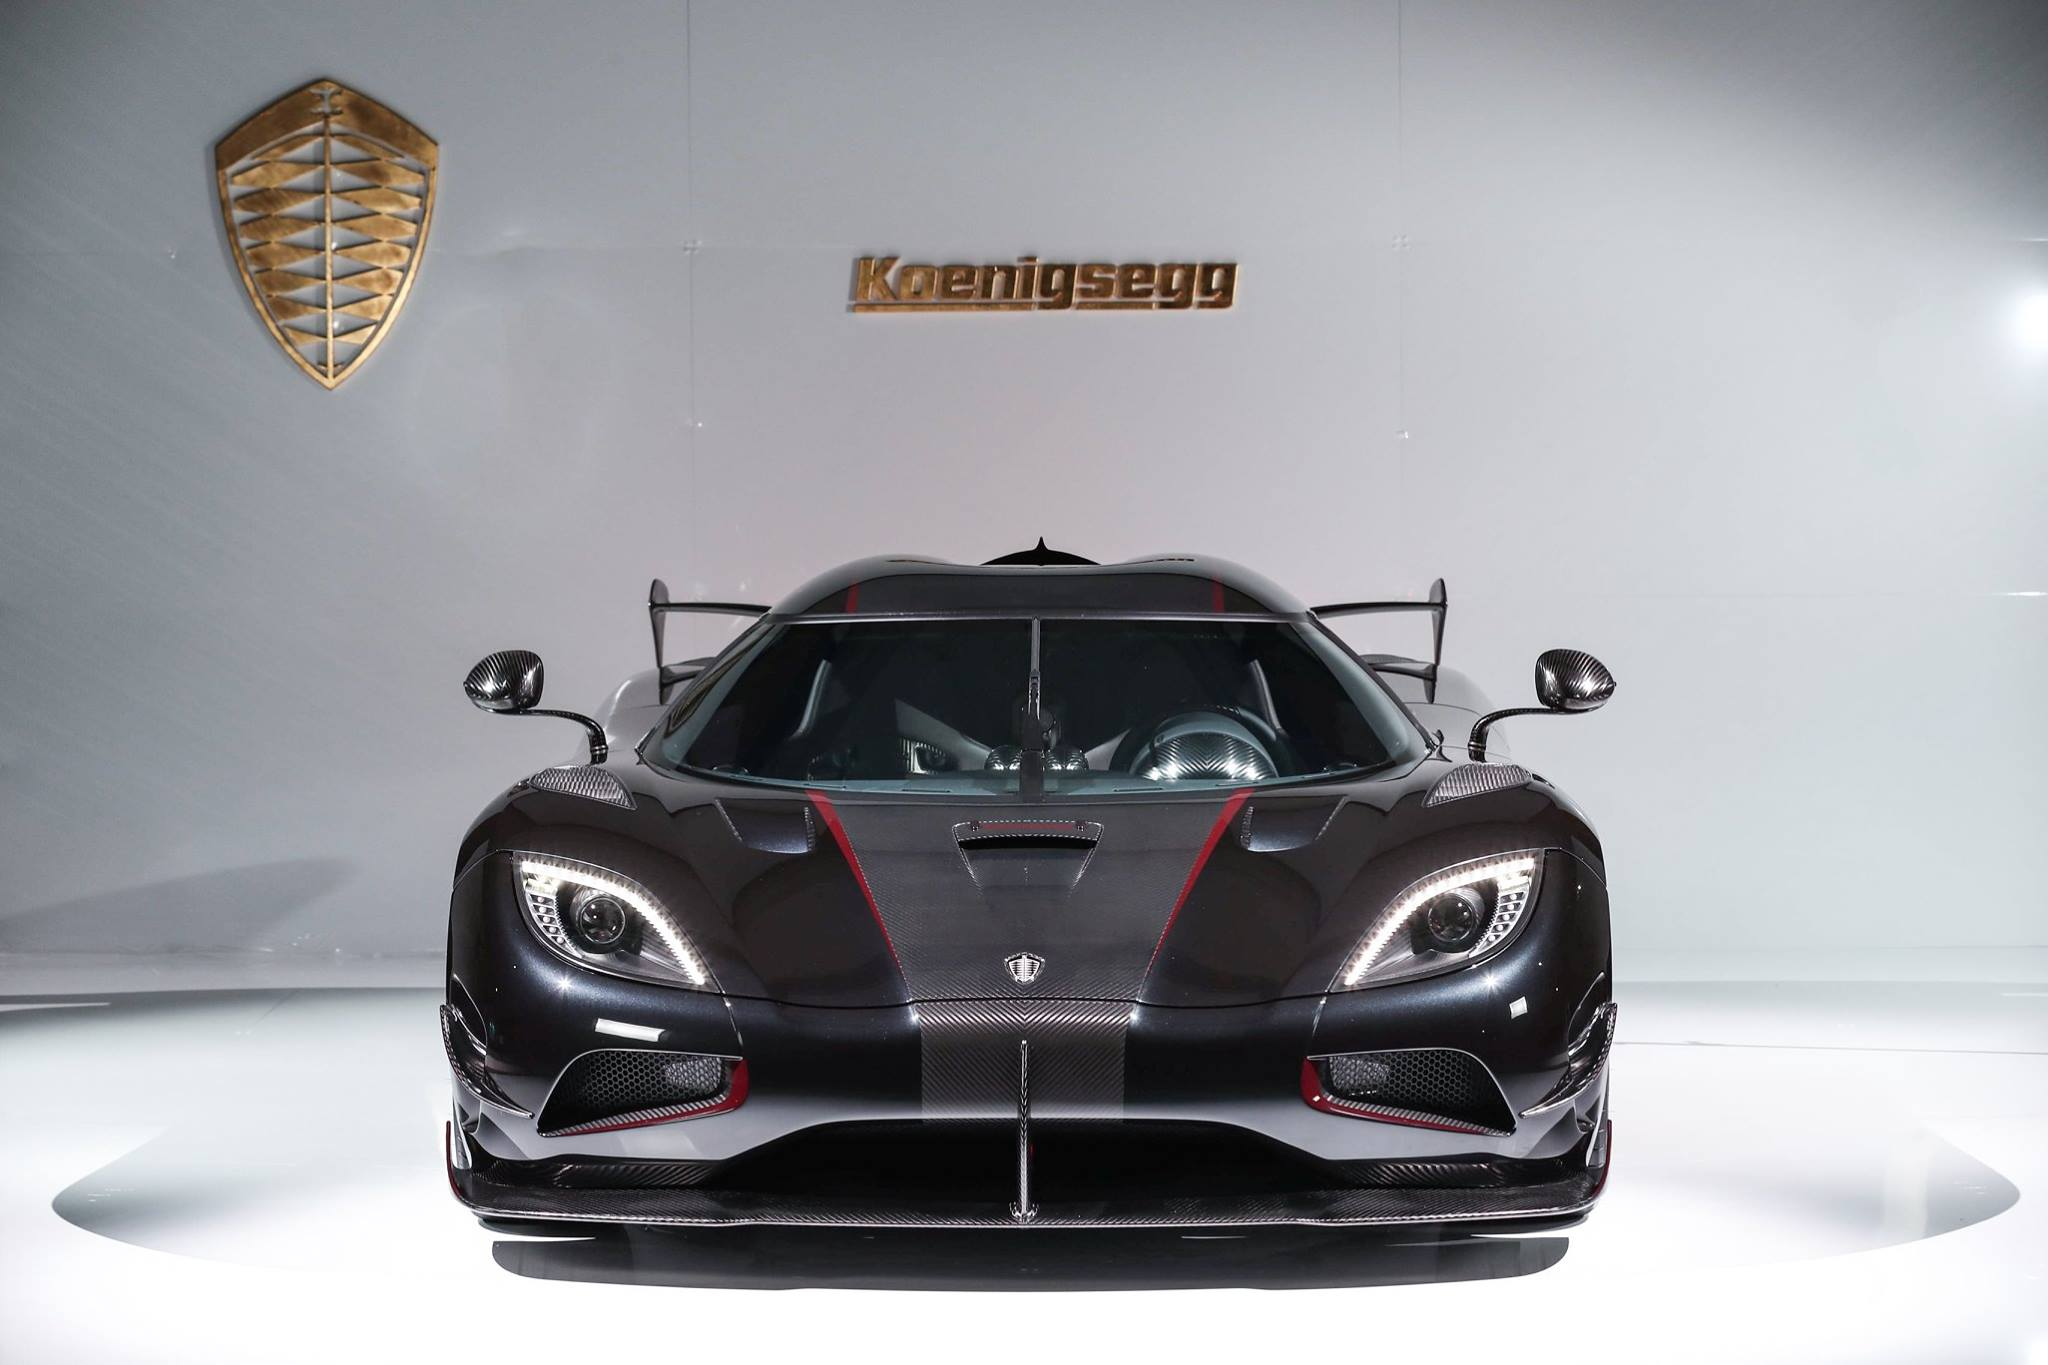 Koenigsegg One Interior >> Koenigsegg Agera RSR Debuts in Japan, Limited to 3 Units Only - GTspirit